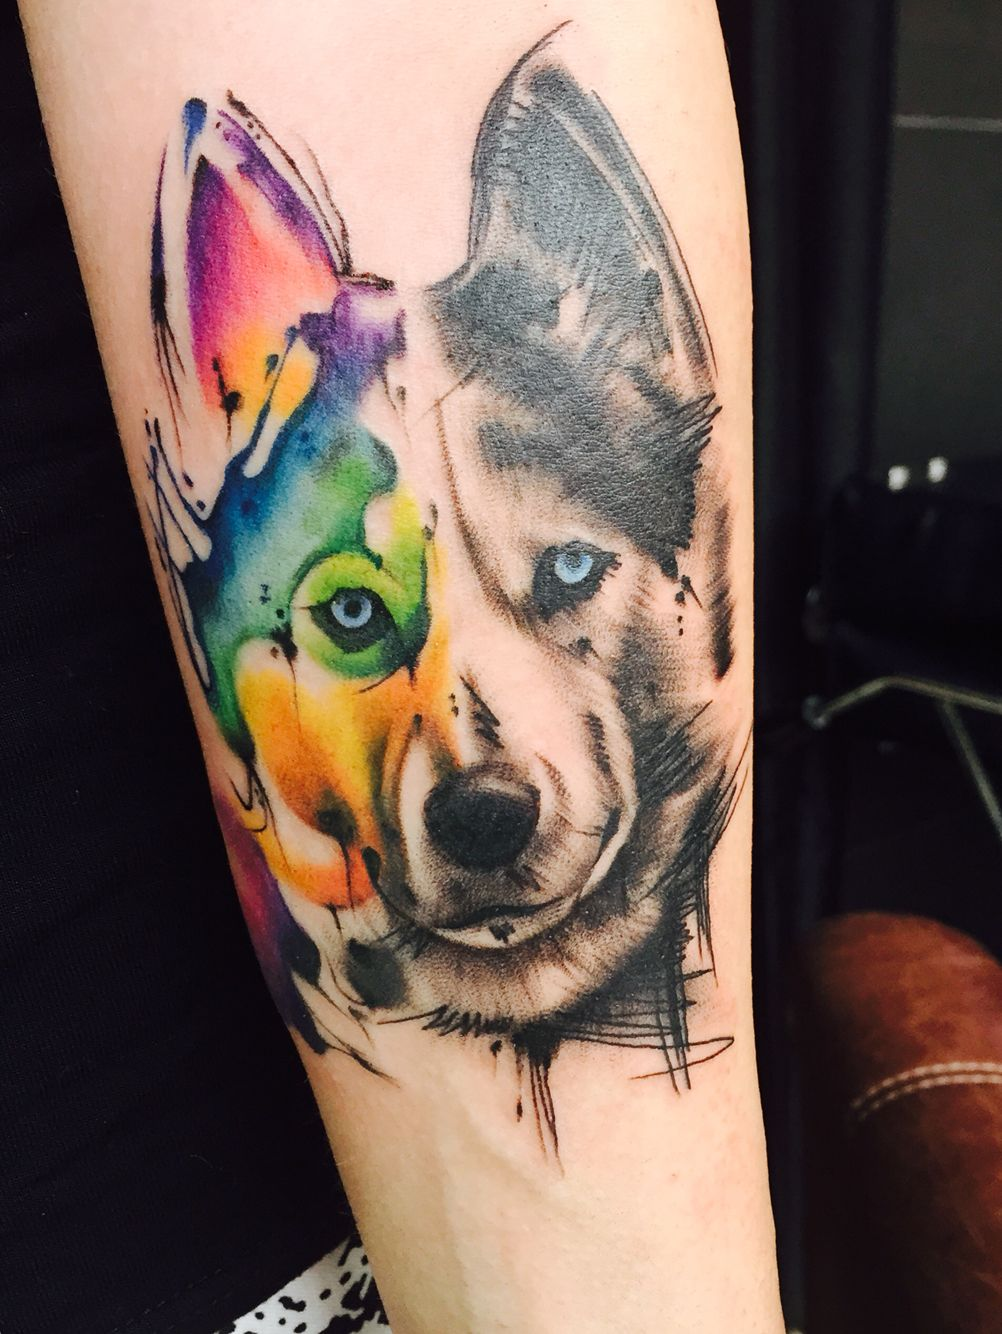 If you decide to get a tattoo look at the image of a fox this animal - Husky Wolf Watercolour Tattoo Art Exactly What I Want To Get